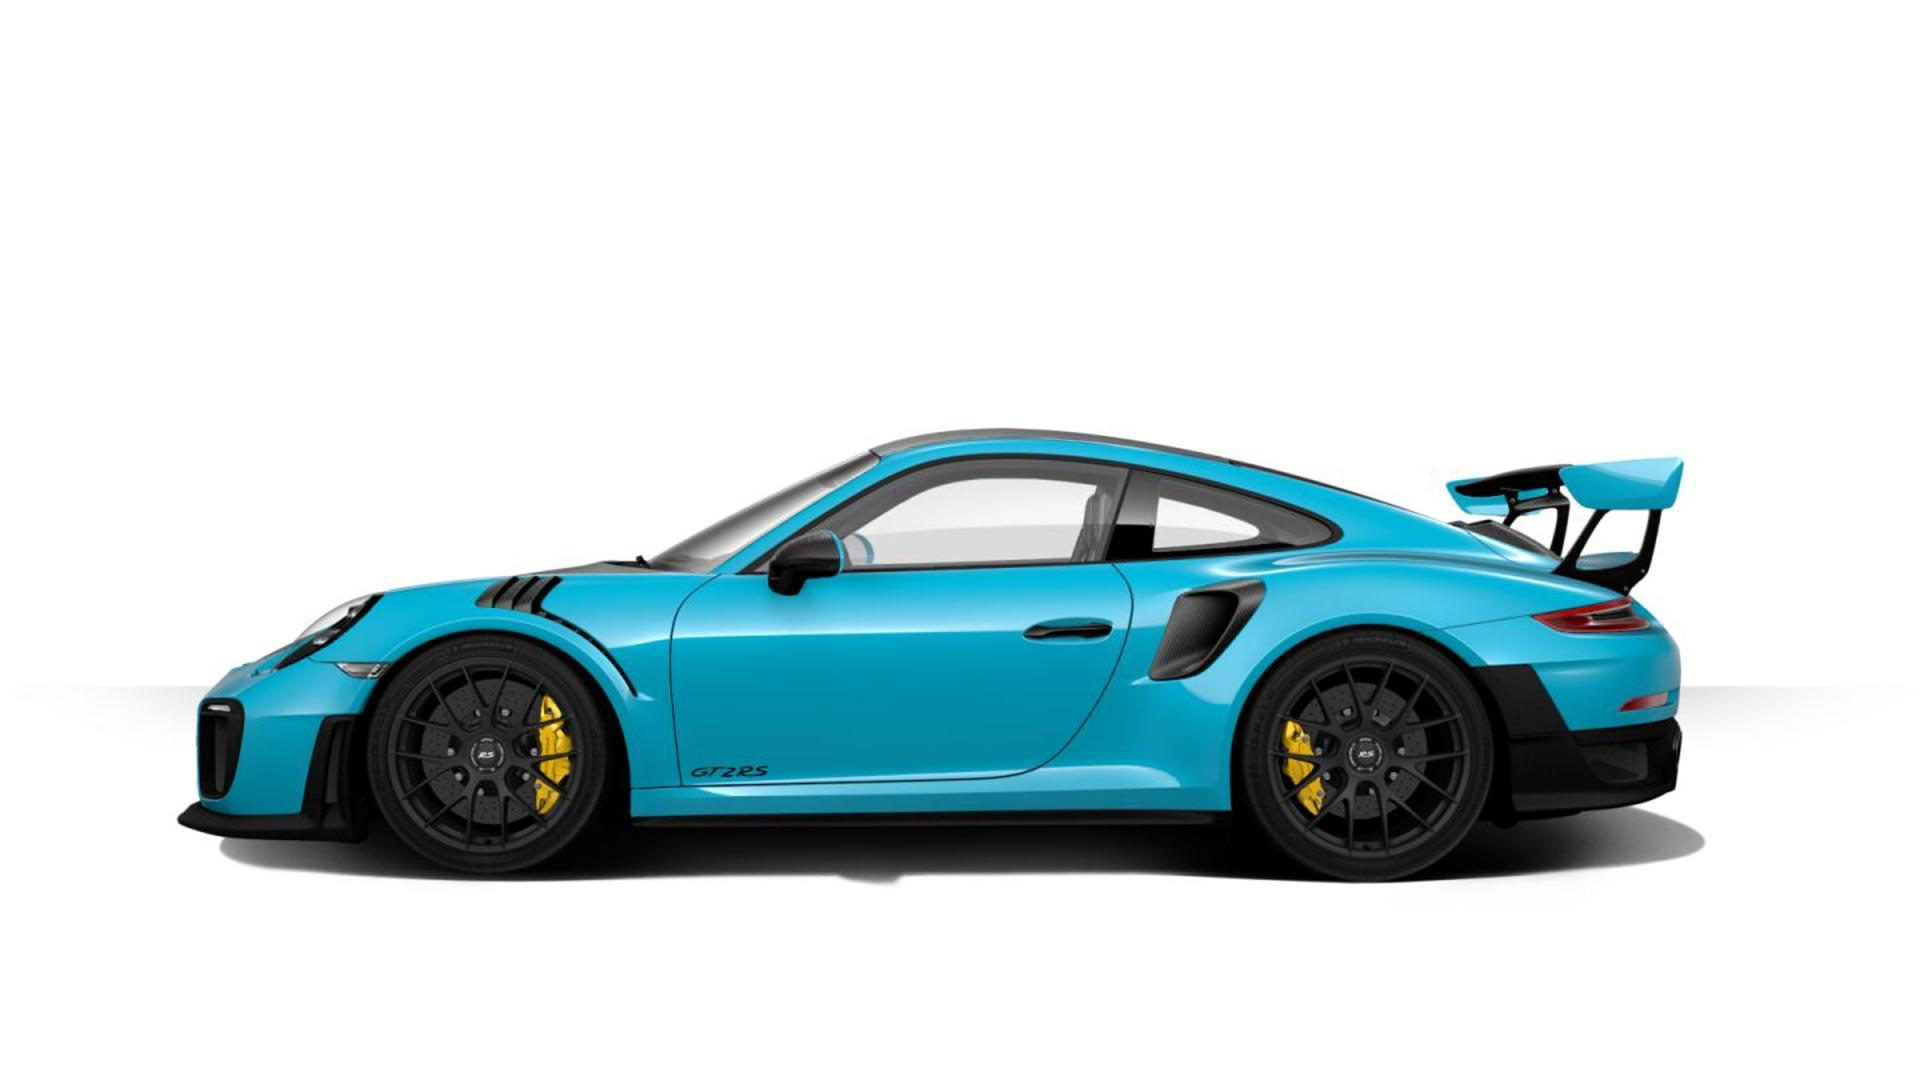 2018 porsche 911 gt2 rs delivers 700 hp motor trend autos post. Black Bedroom Furniture Sets. Home Design Ideas